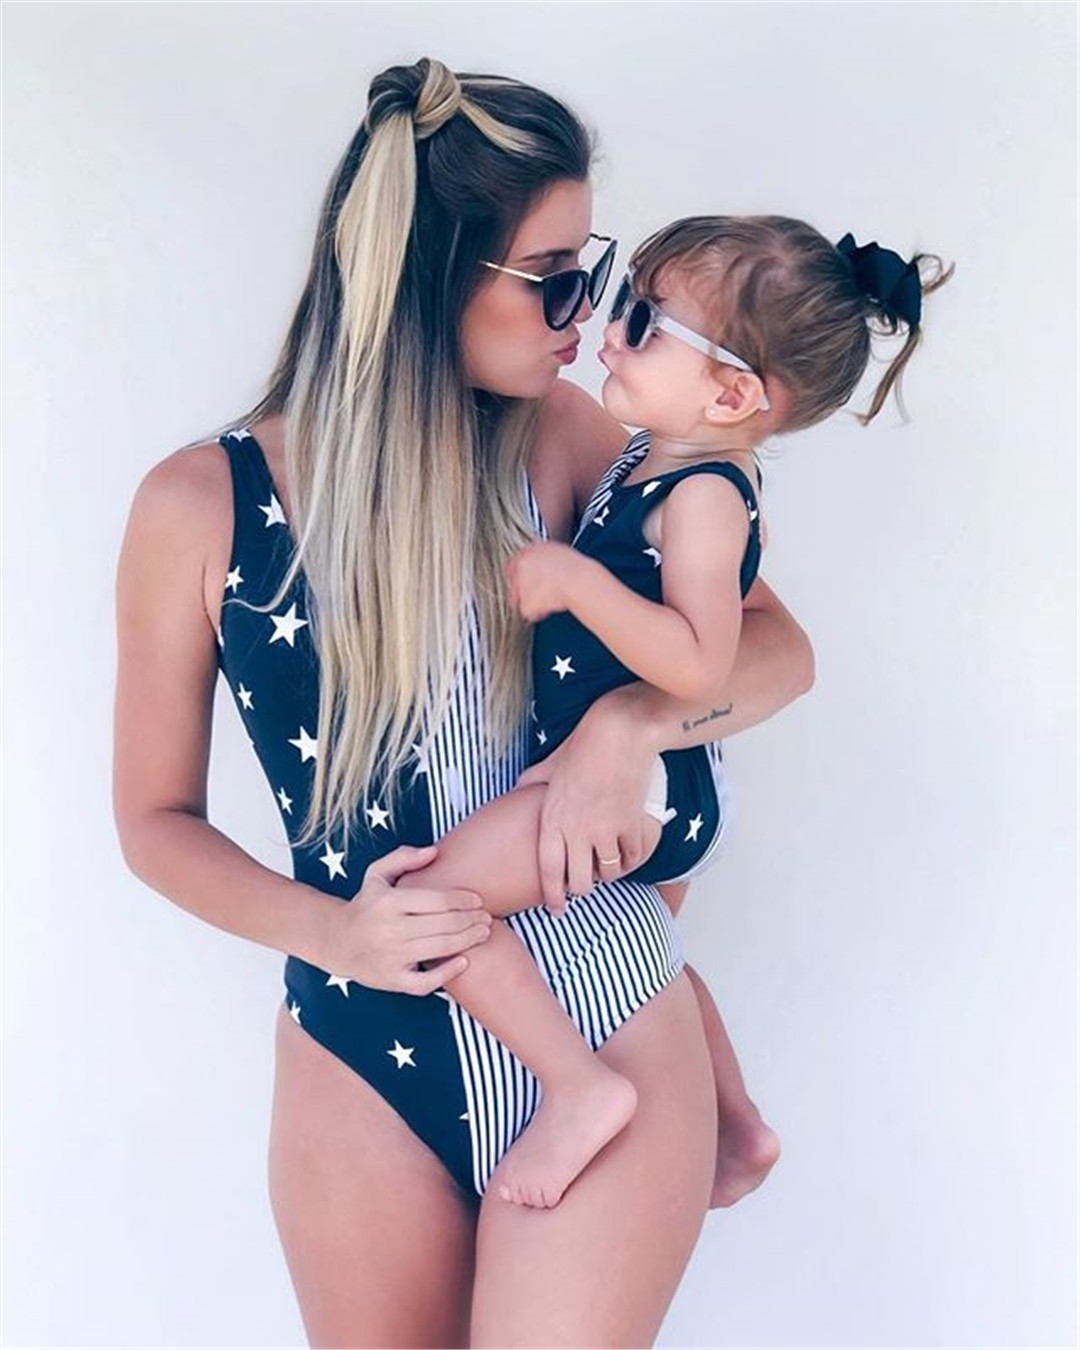 HTB1zV.XhgKTBuNkSne1q6yJoXXaf 2019 mother daughter clothing Swimwear Summer Matching Mom and Daughter Clothes Women Swimsuit Beachwear Baby Girl Clothes Swimsuits